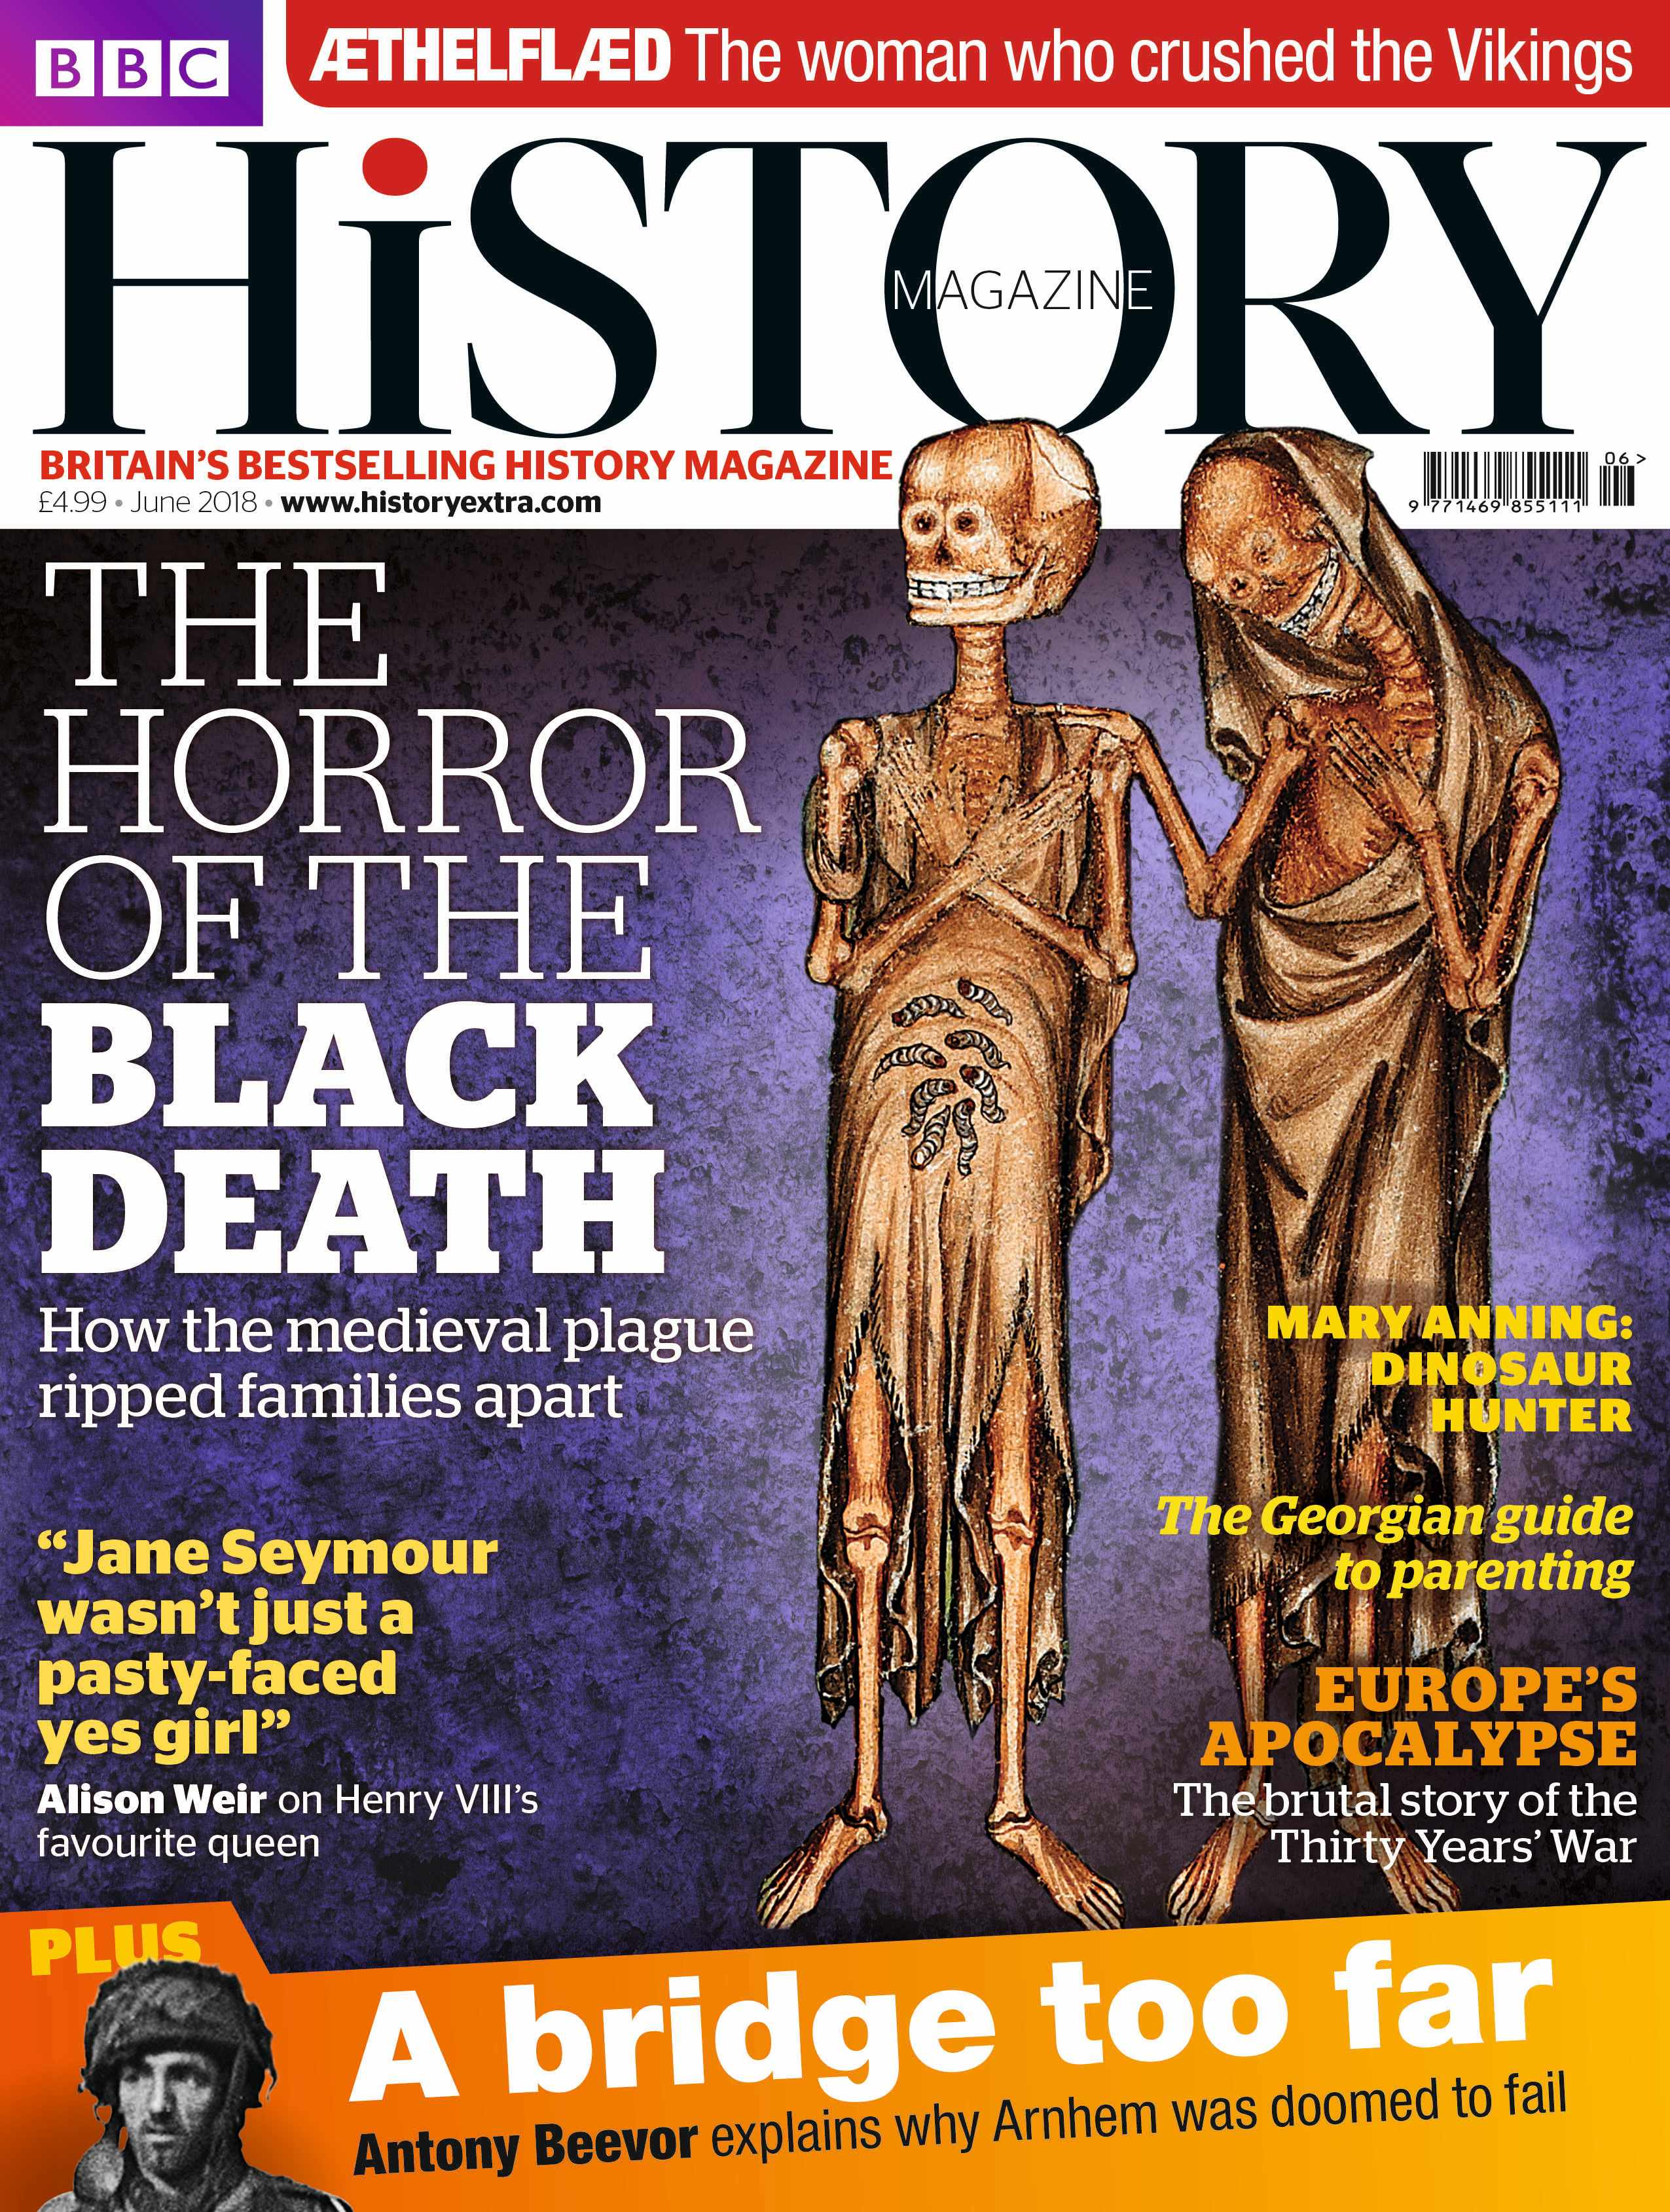 June 2018 BBC History Magazine cover